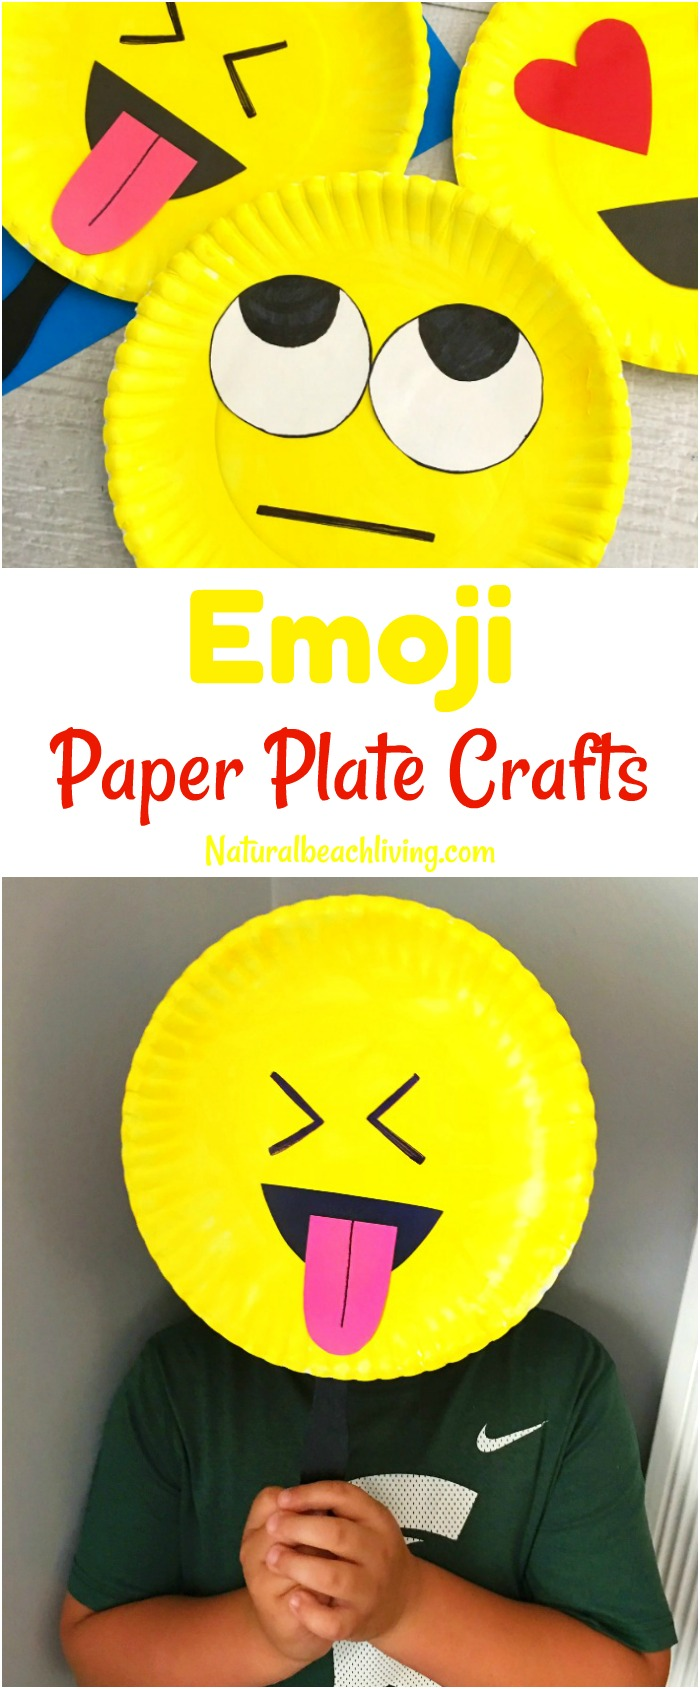 image about Emoji Feelings Printable known as Tremendous Lovely Emoji Paper Plate Craft - Feelings Concept Celebration